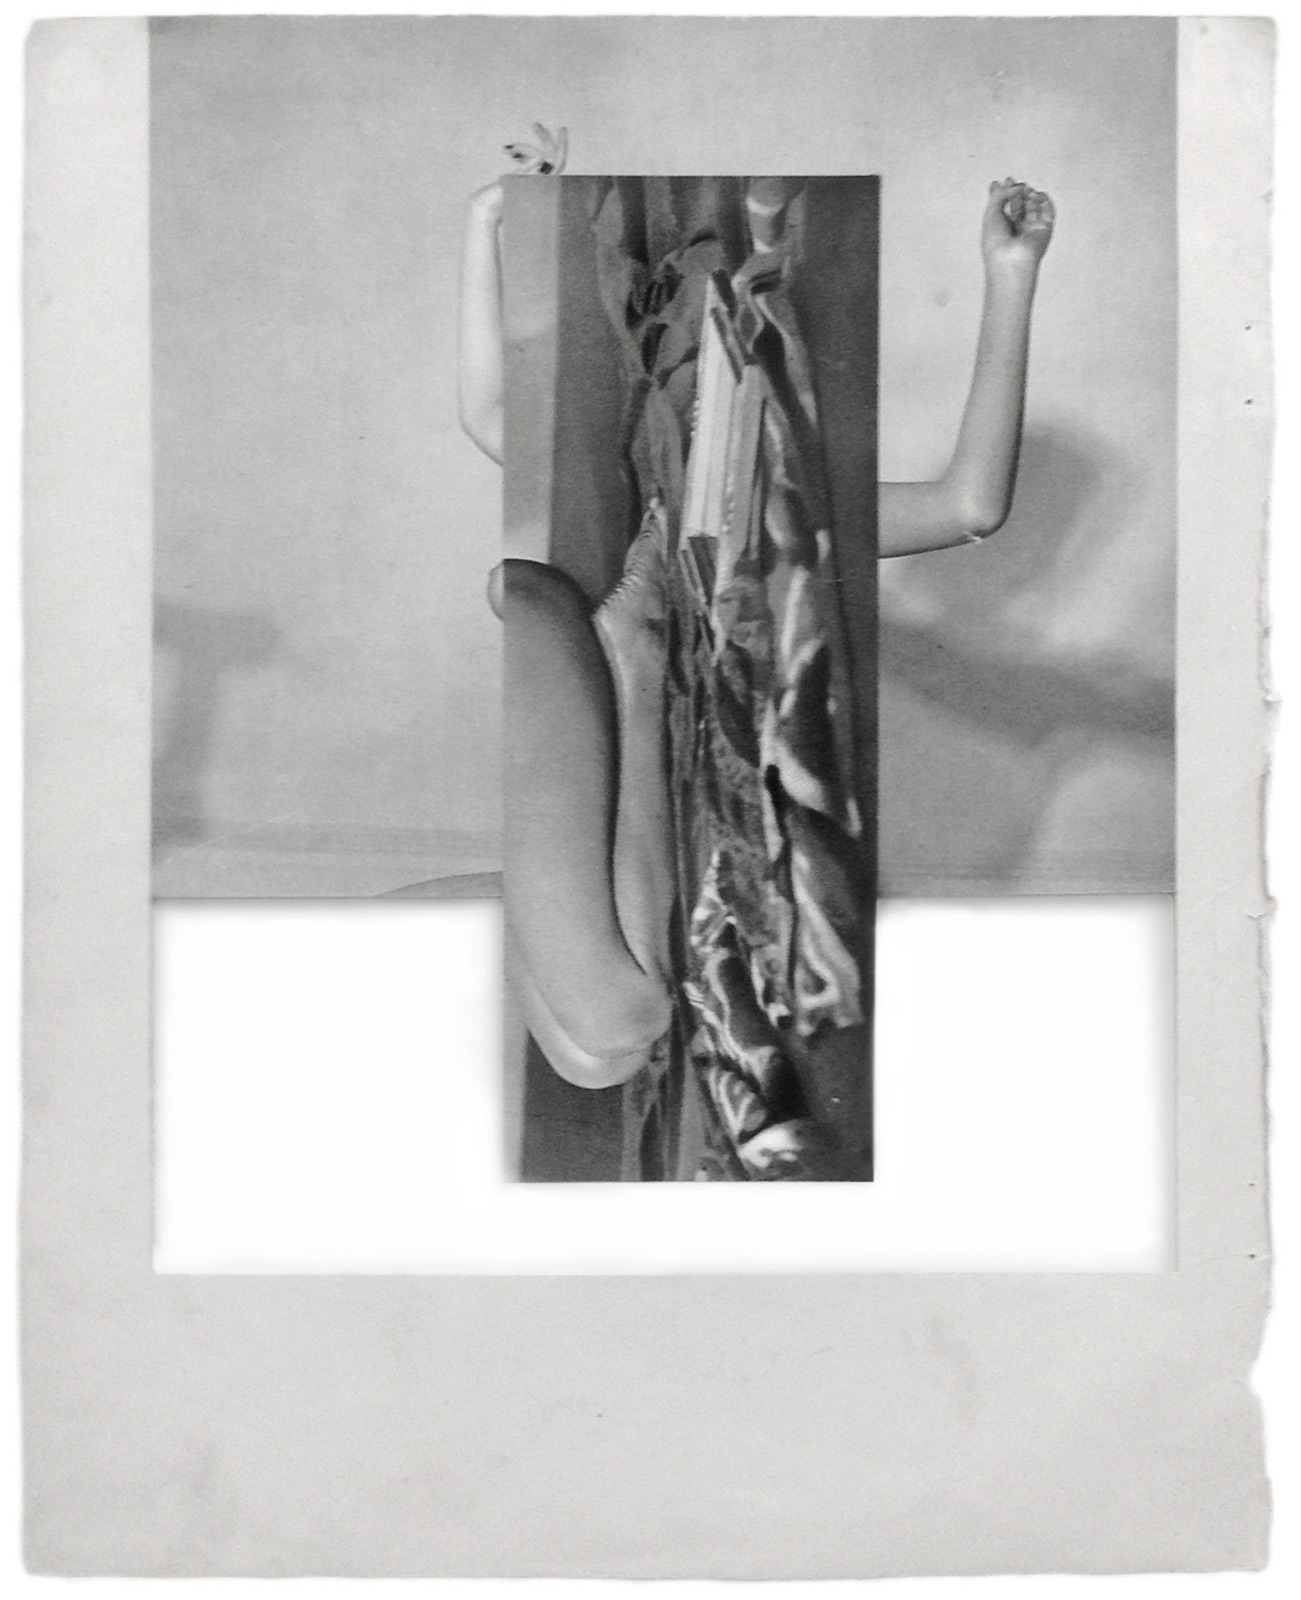 Cecilia Bonilla | Sets for domestic leisure 3 | 2015 | Collage | 29x23cm